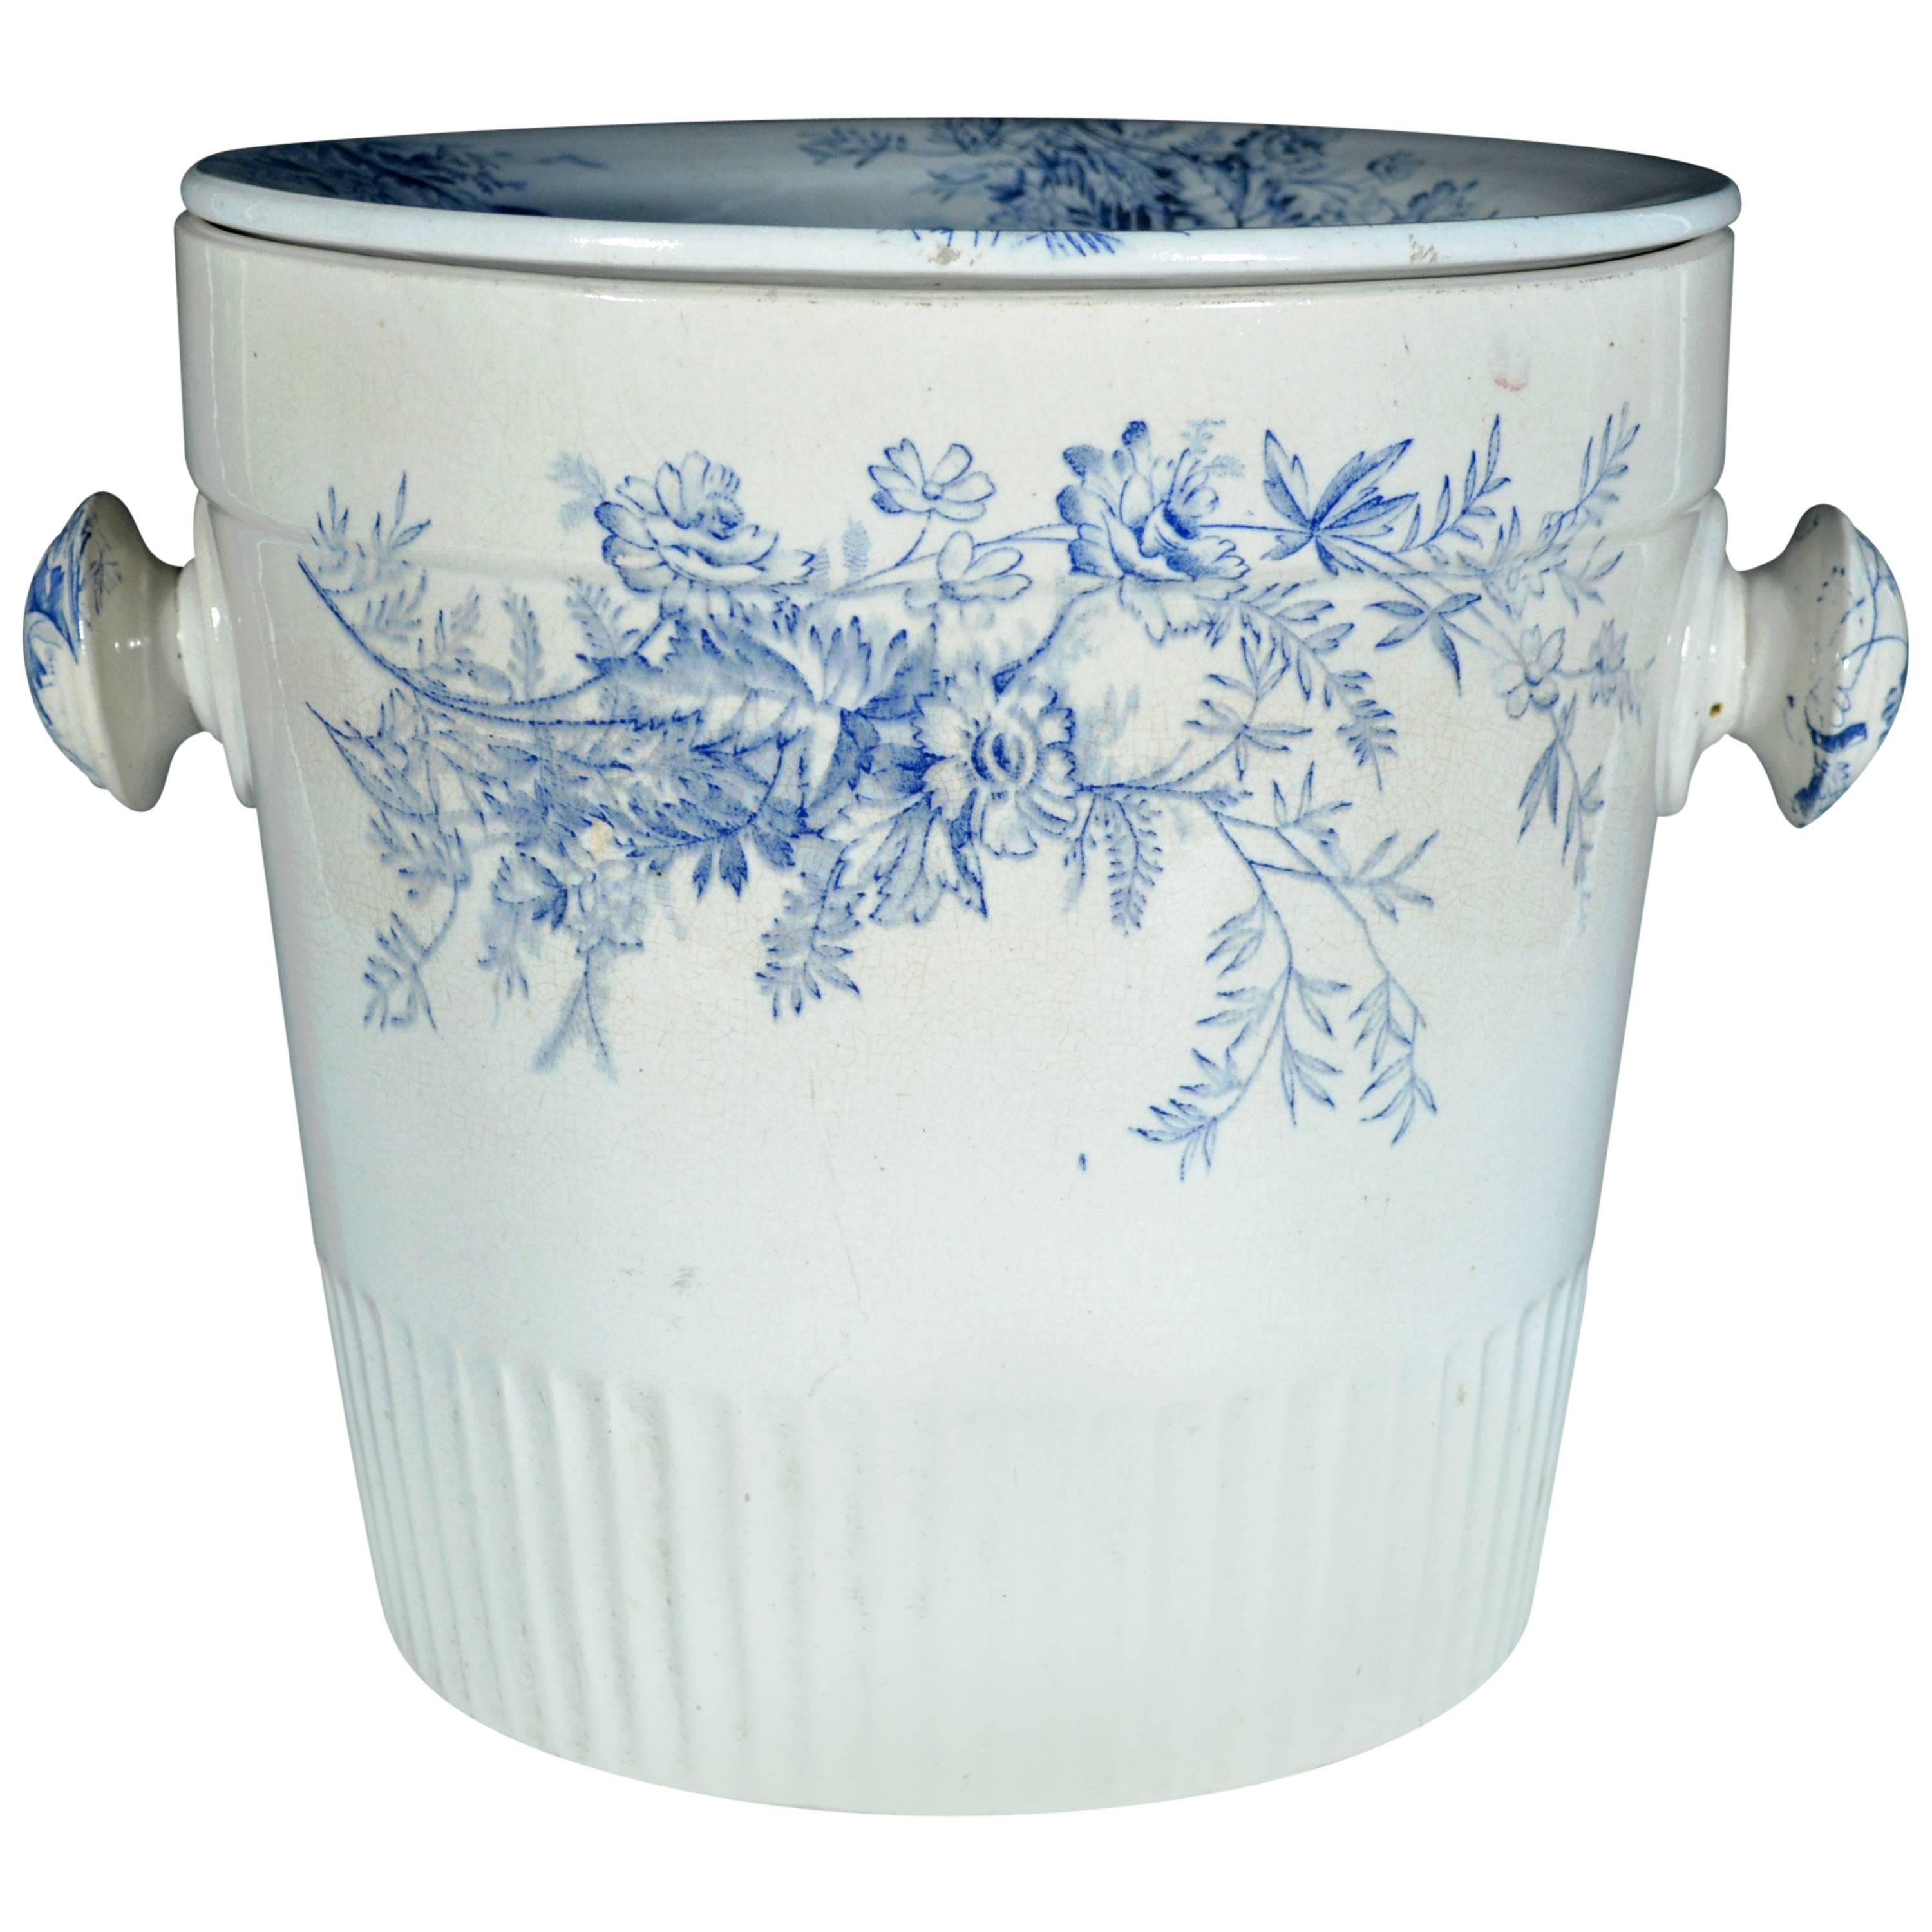 Blue and White Floral Pottery Covered Pil and Cover, Vera Pottery